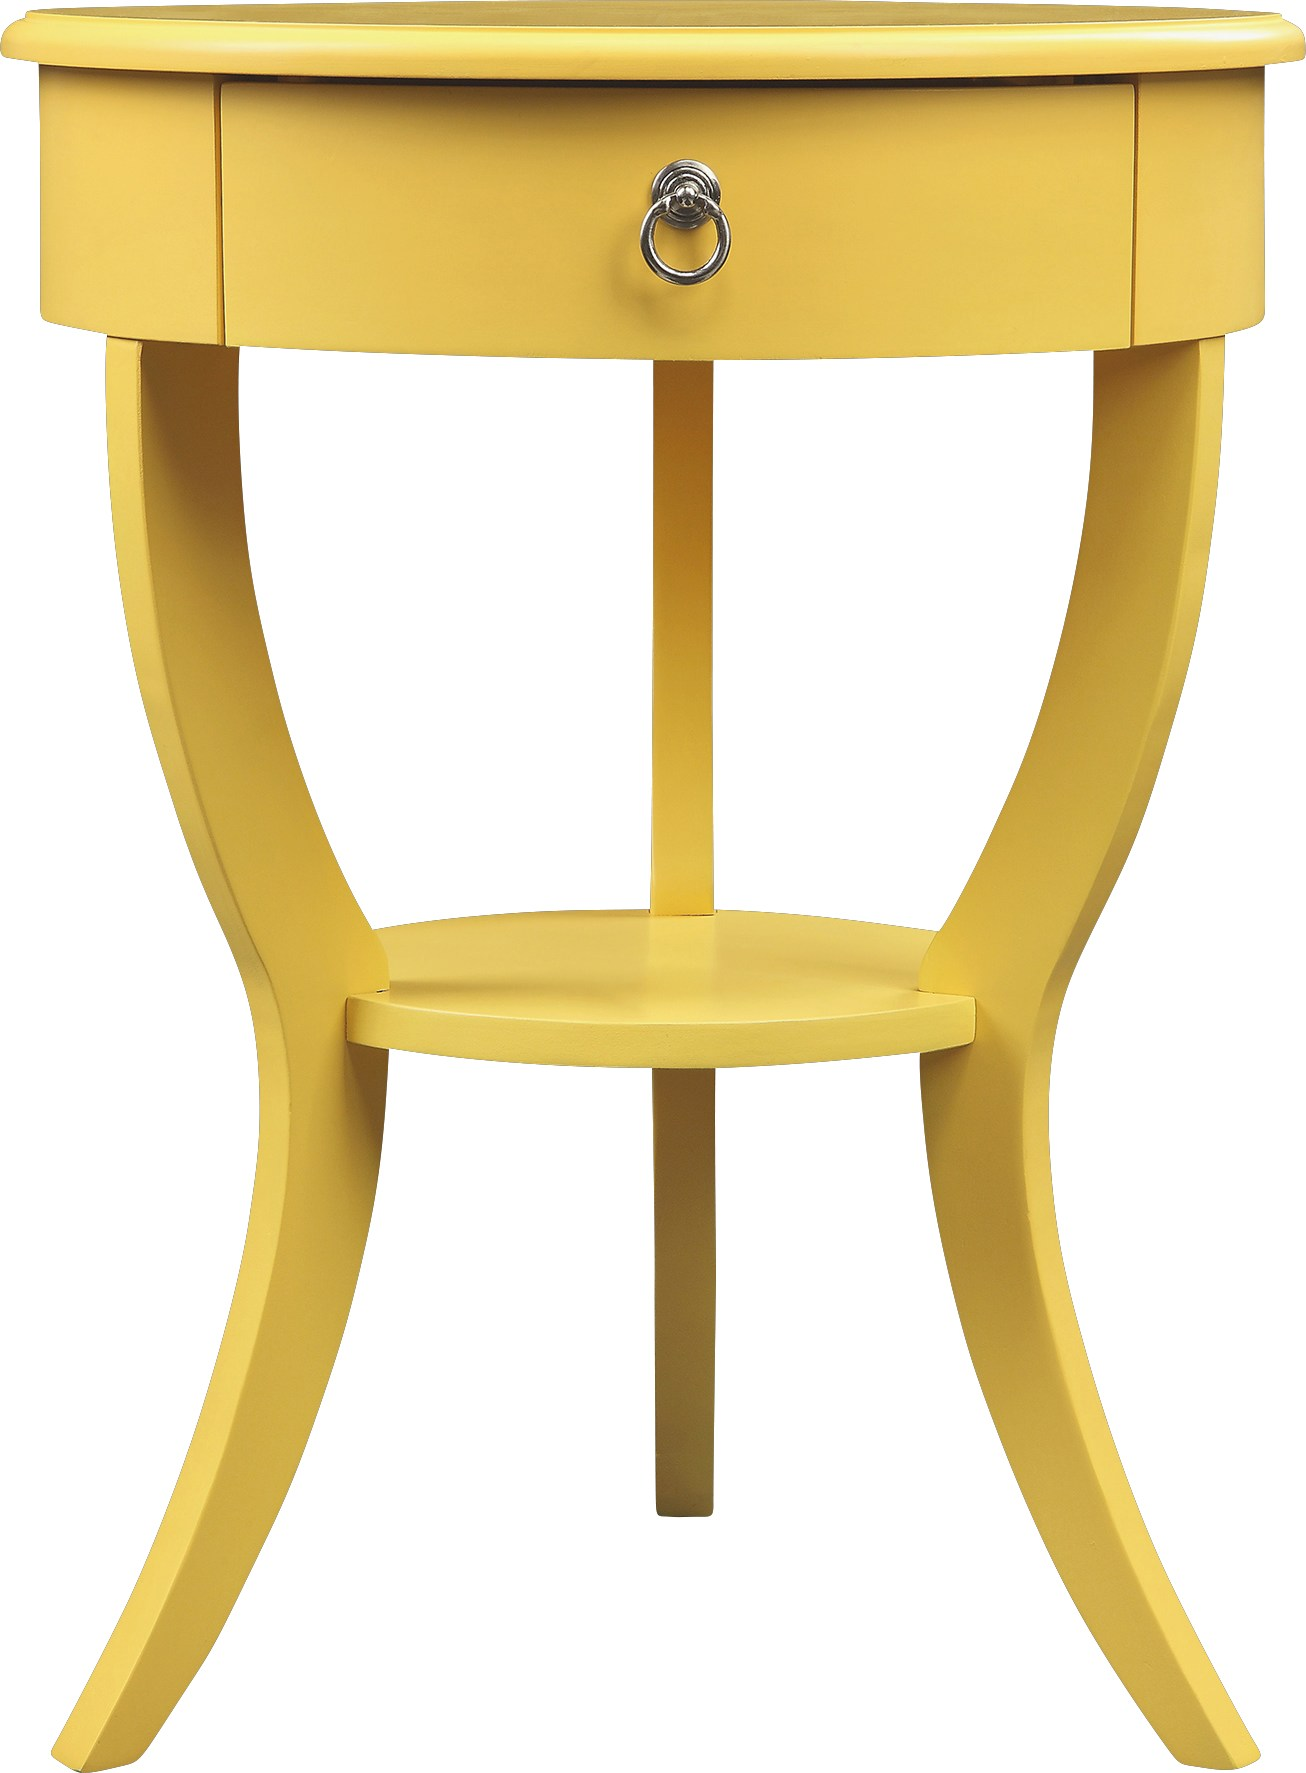 zellman yellow accent table tables colors outdoor wood one drawer threshold gold glass top coffee clearance and chairs copper drum end small black oval bedroom design collapsible